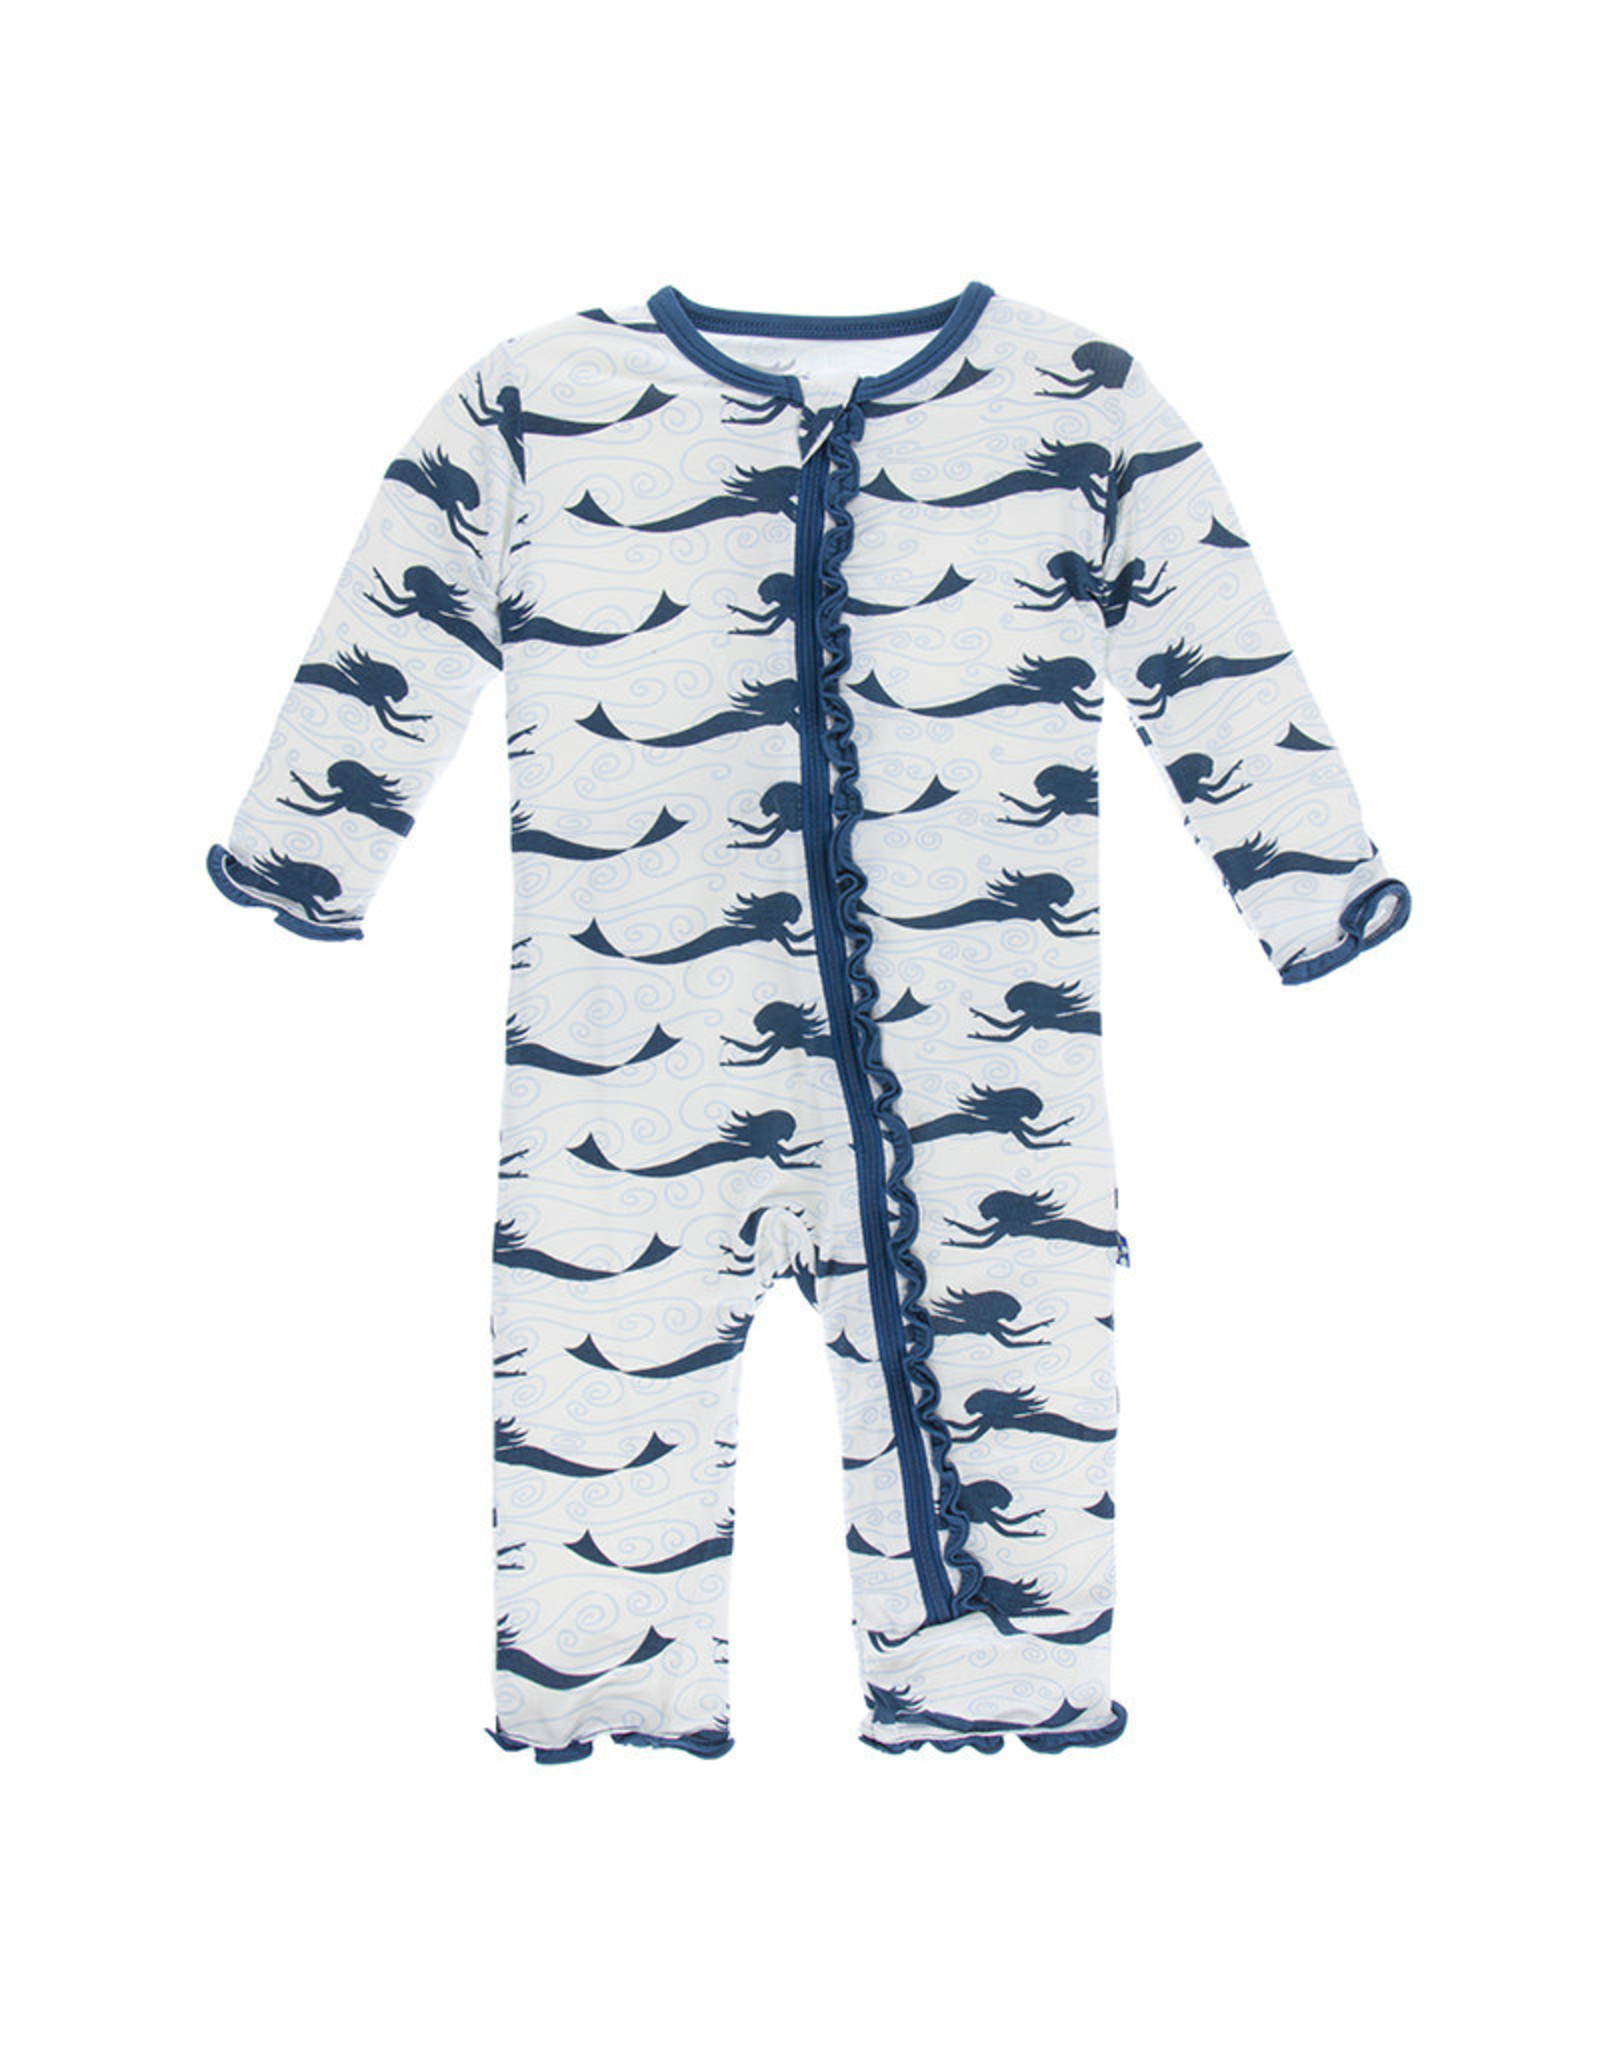 KicKee Pants Kickee Pants Print Muffin Ruffle Coverall with Snaps, Natural Mermaid